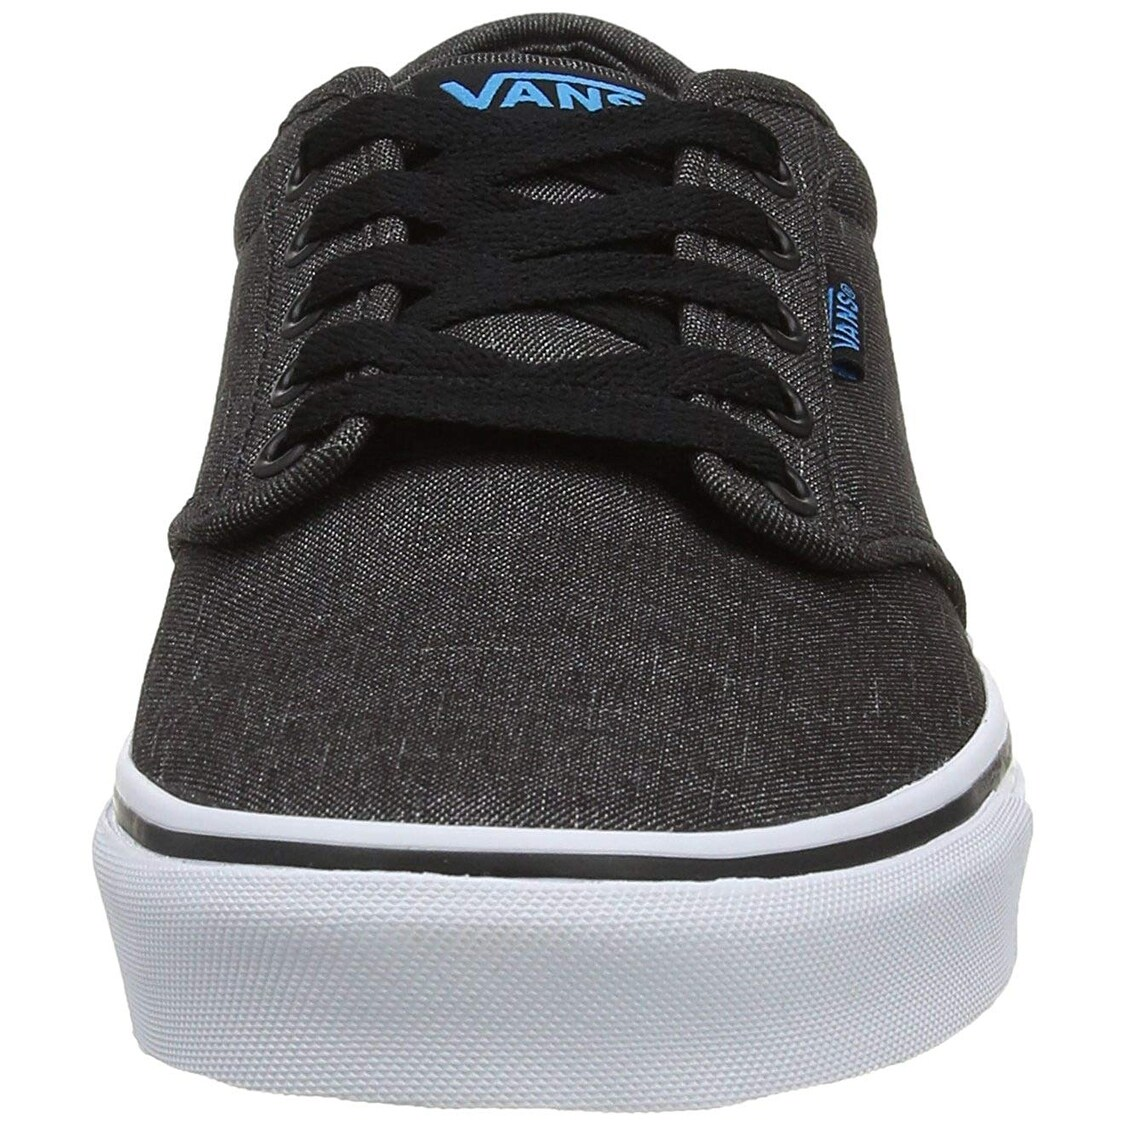 e8d862805f Shop Vans Mens Atwood Textile Shoes Black Hawaiian Ocean Size 8 - Free  Shipping Today - Overstock - 25367404